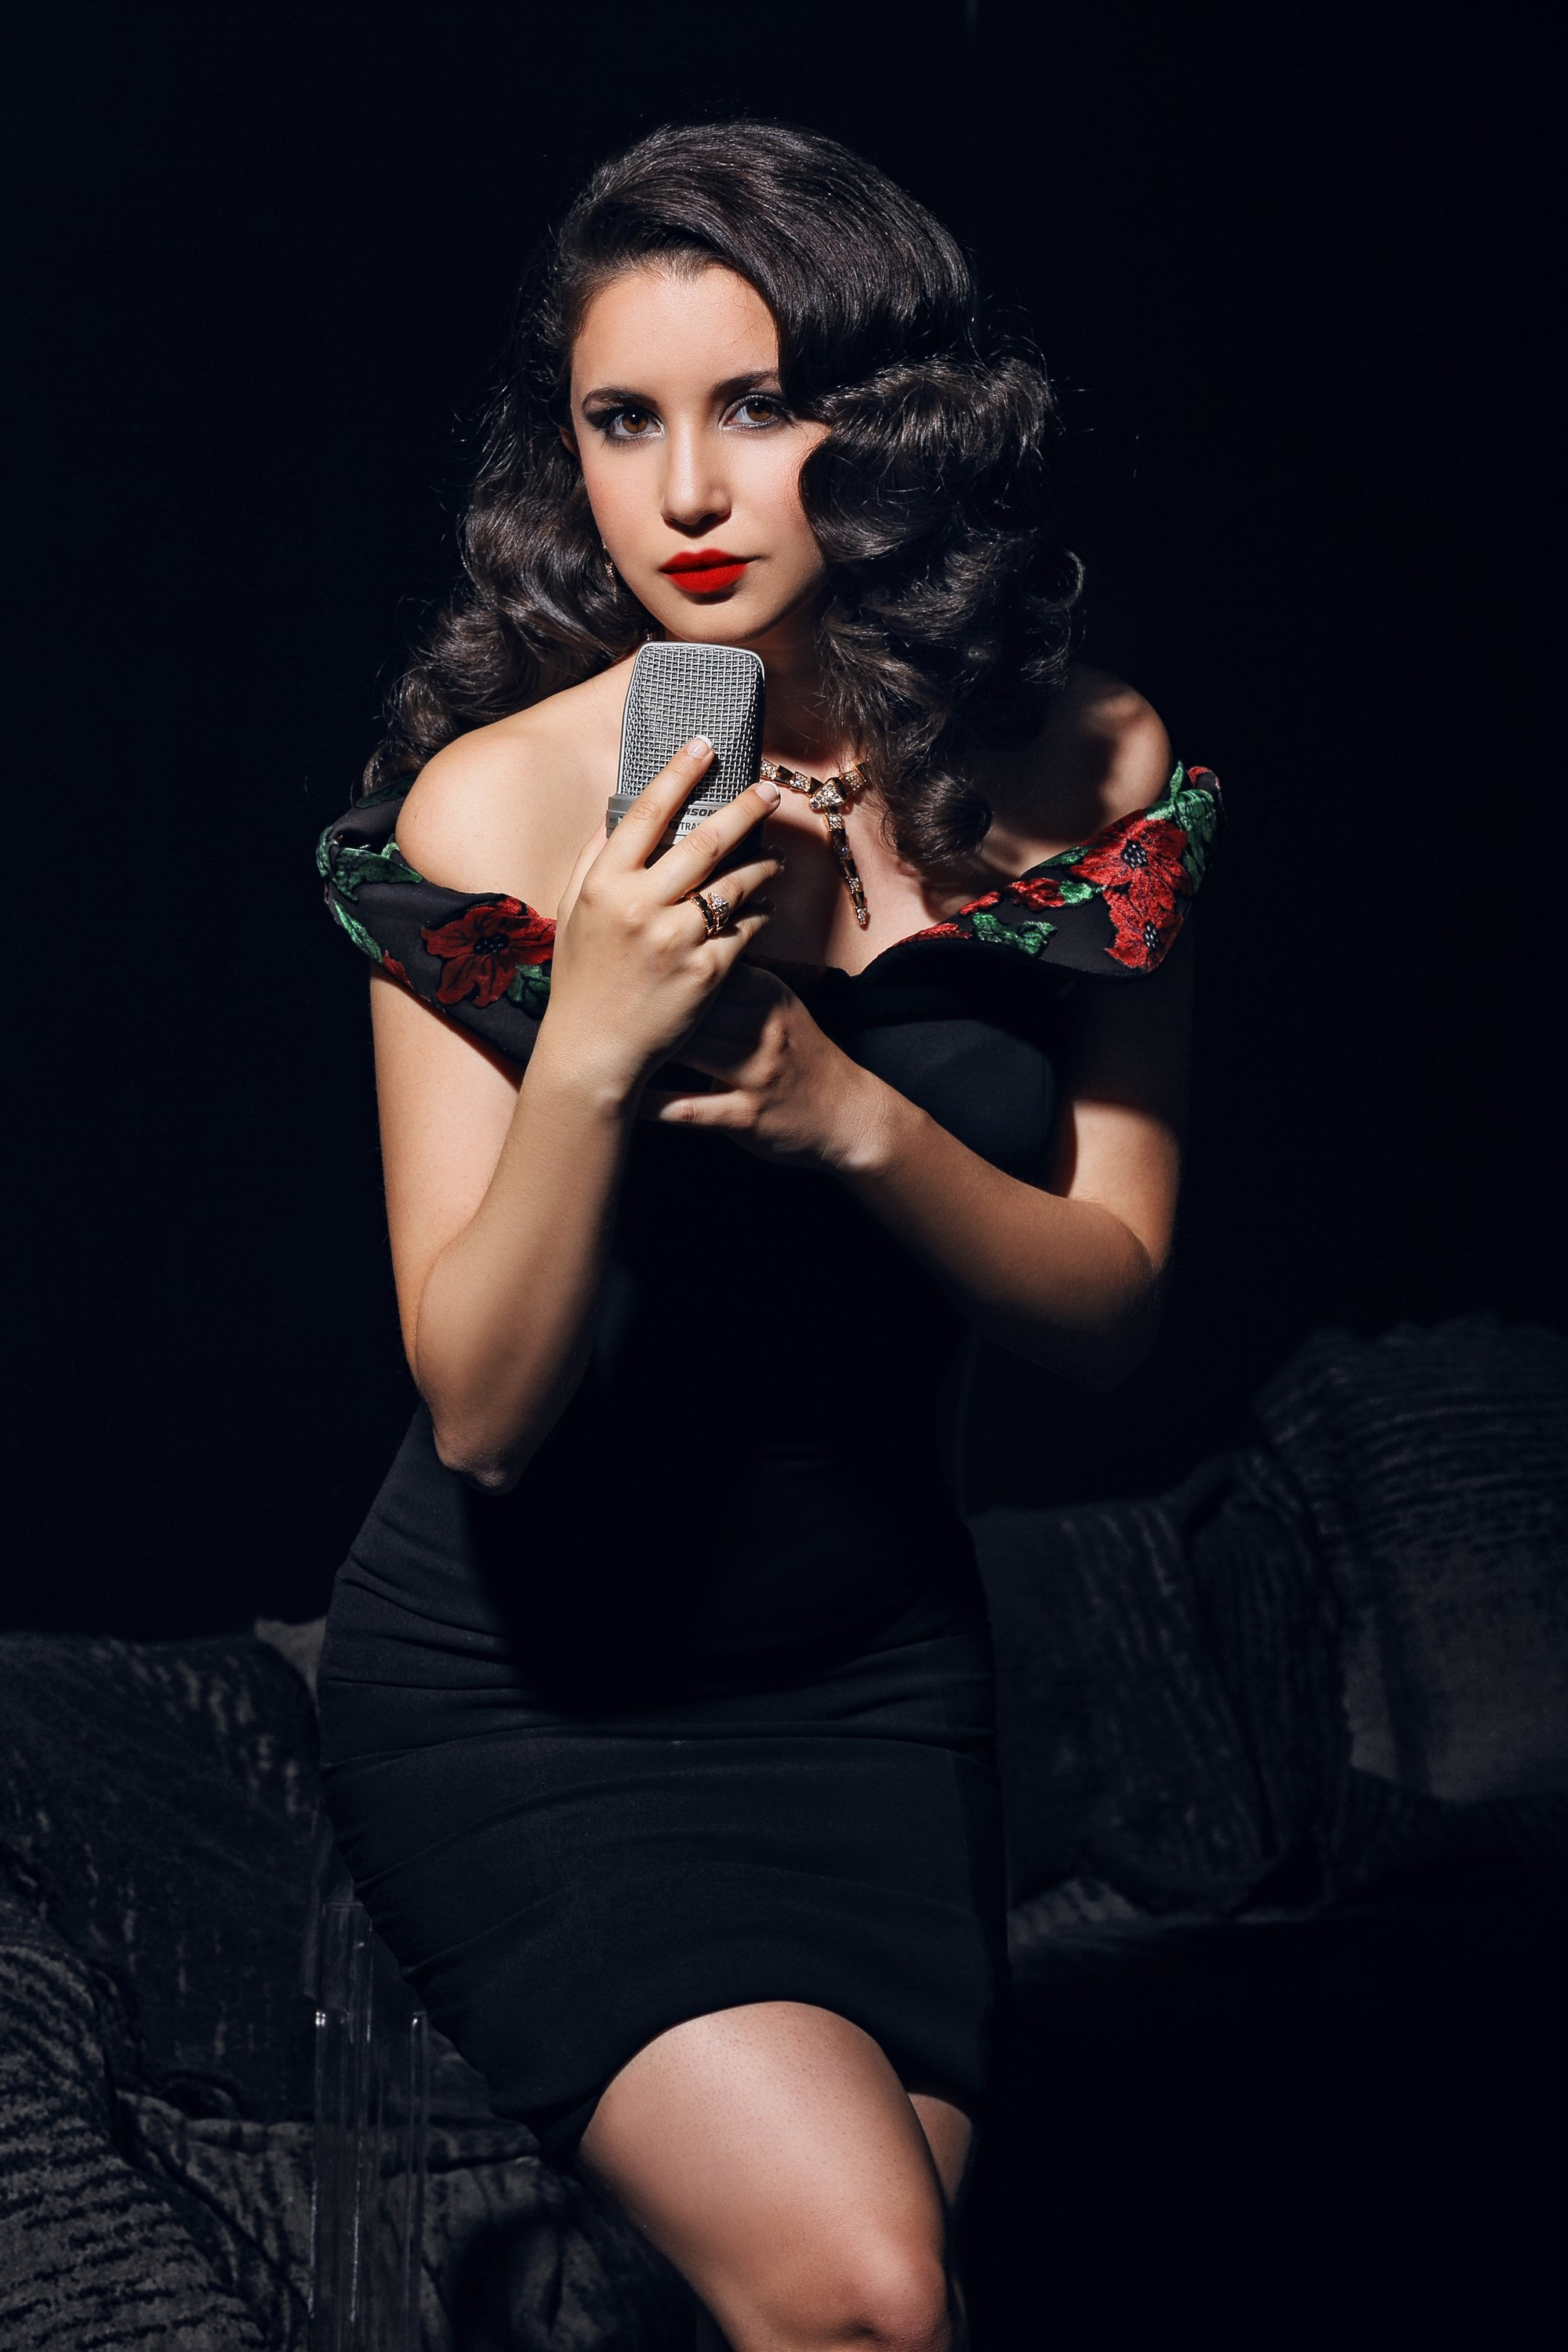 Karsu will sing the legendary works of Atlantic Records at Harbiye Cemil Topuzlu Open-Air Theater on Sept. 20.